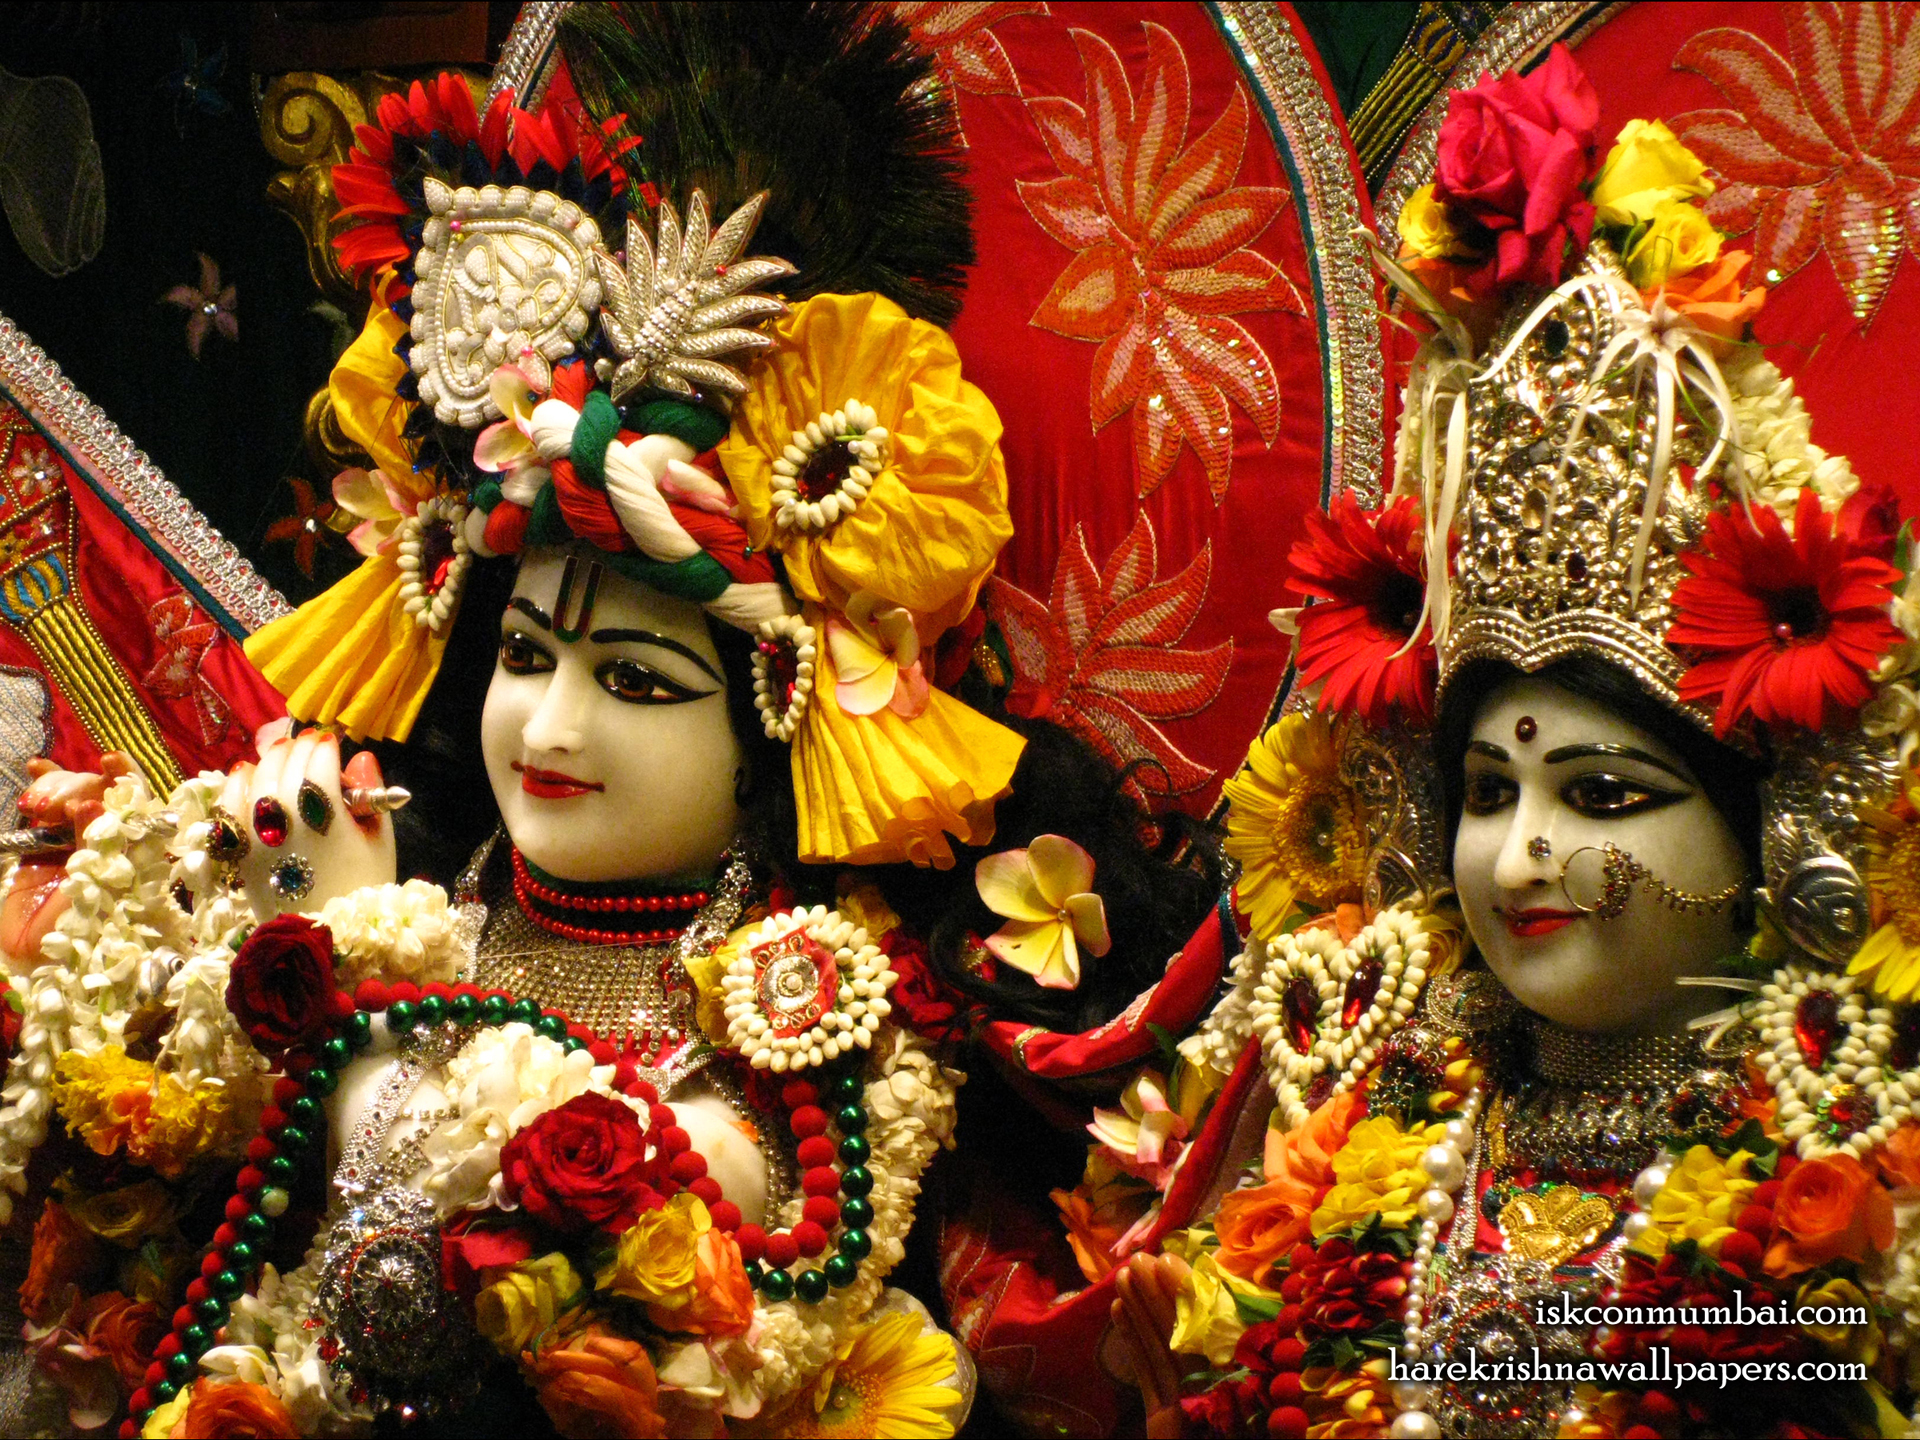 Sri Sri Radha Rasabihari Close up Wallpaper (015) Size 1920x1440 Download